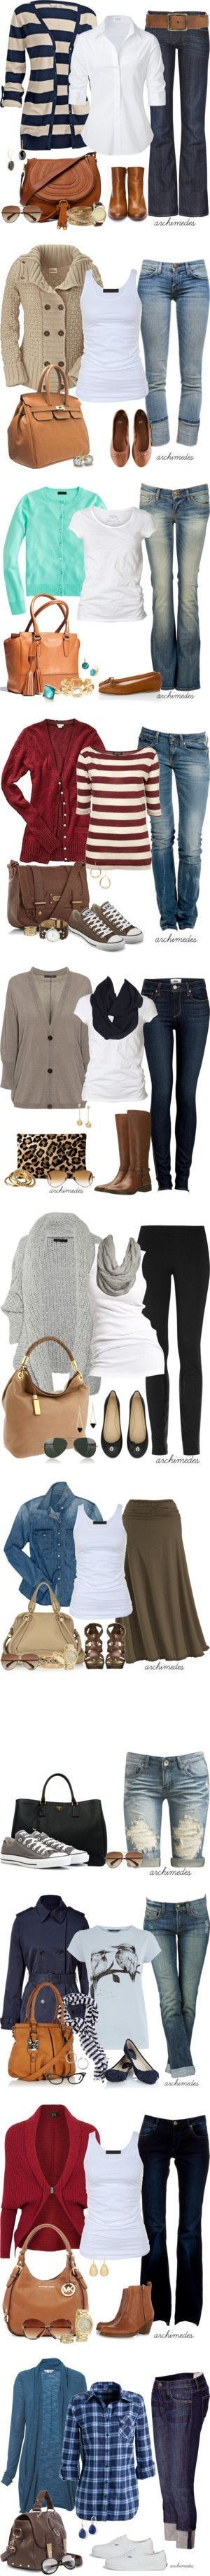 best Fashion images on Pinterest  Casual wear Cute outfits and